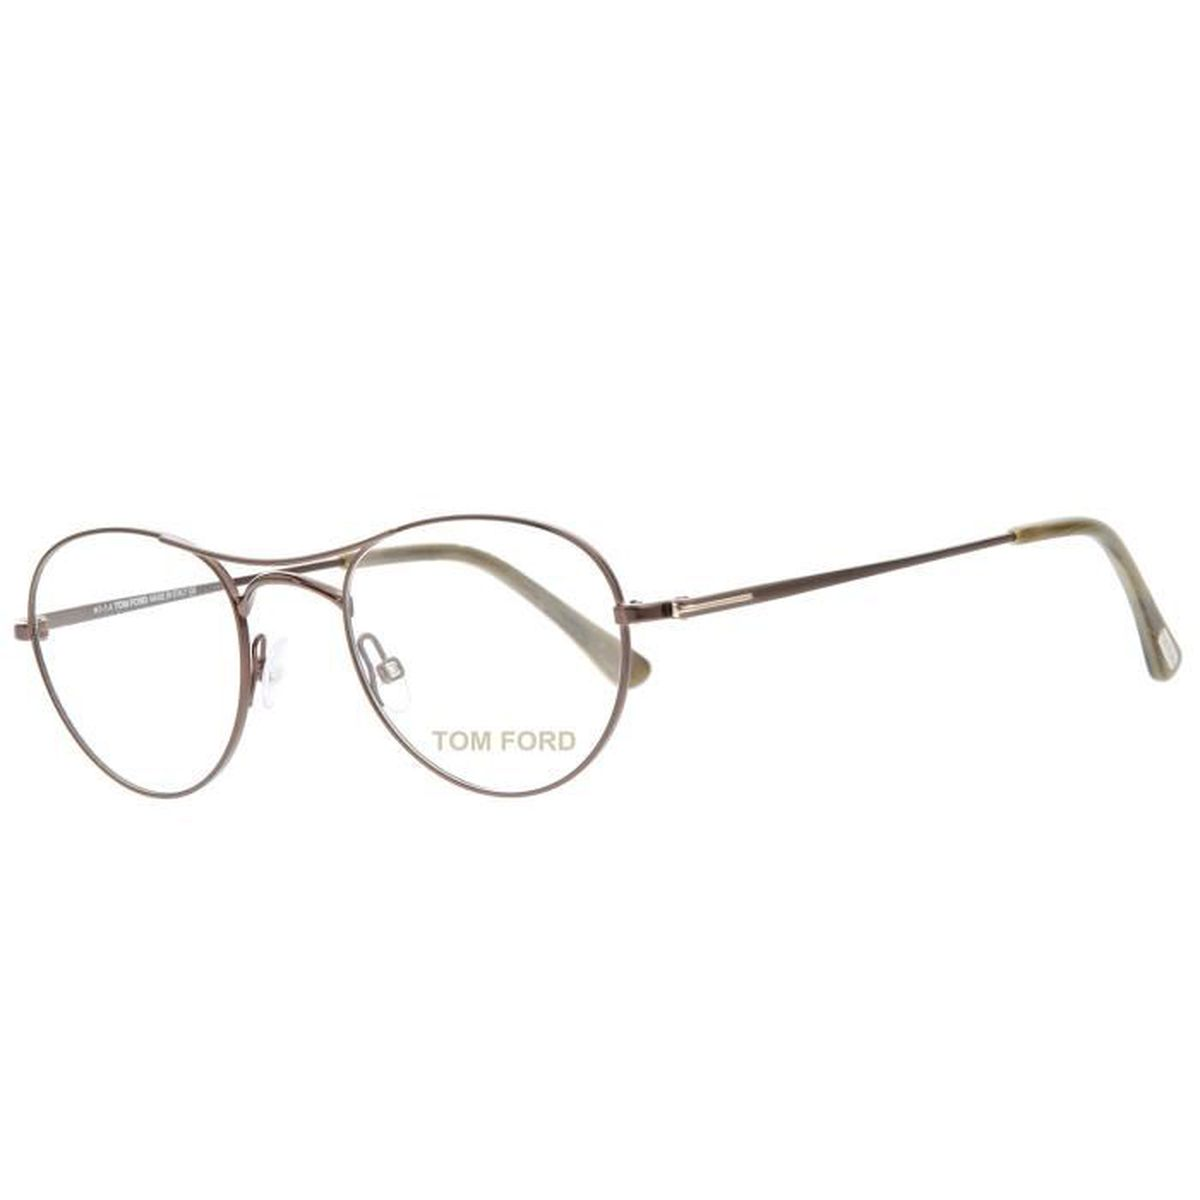 Achat Frames Lunettes Vente Tom Ford Optical De Ft5331 48 036 mN8nP0yvwO